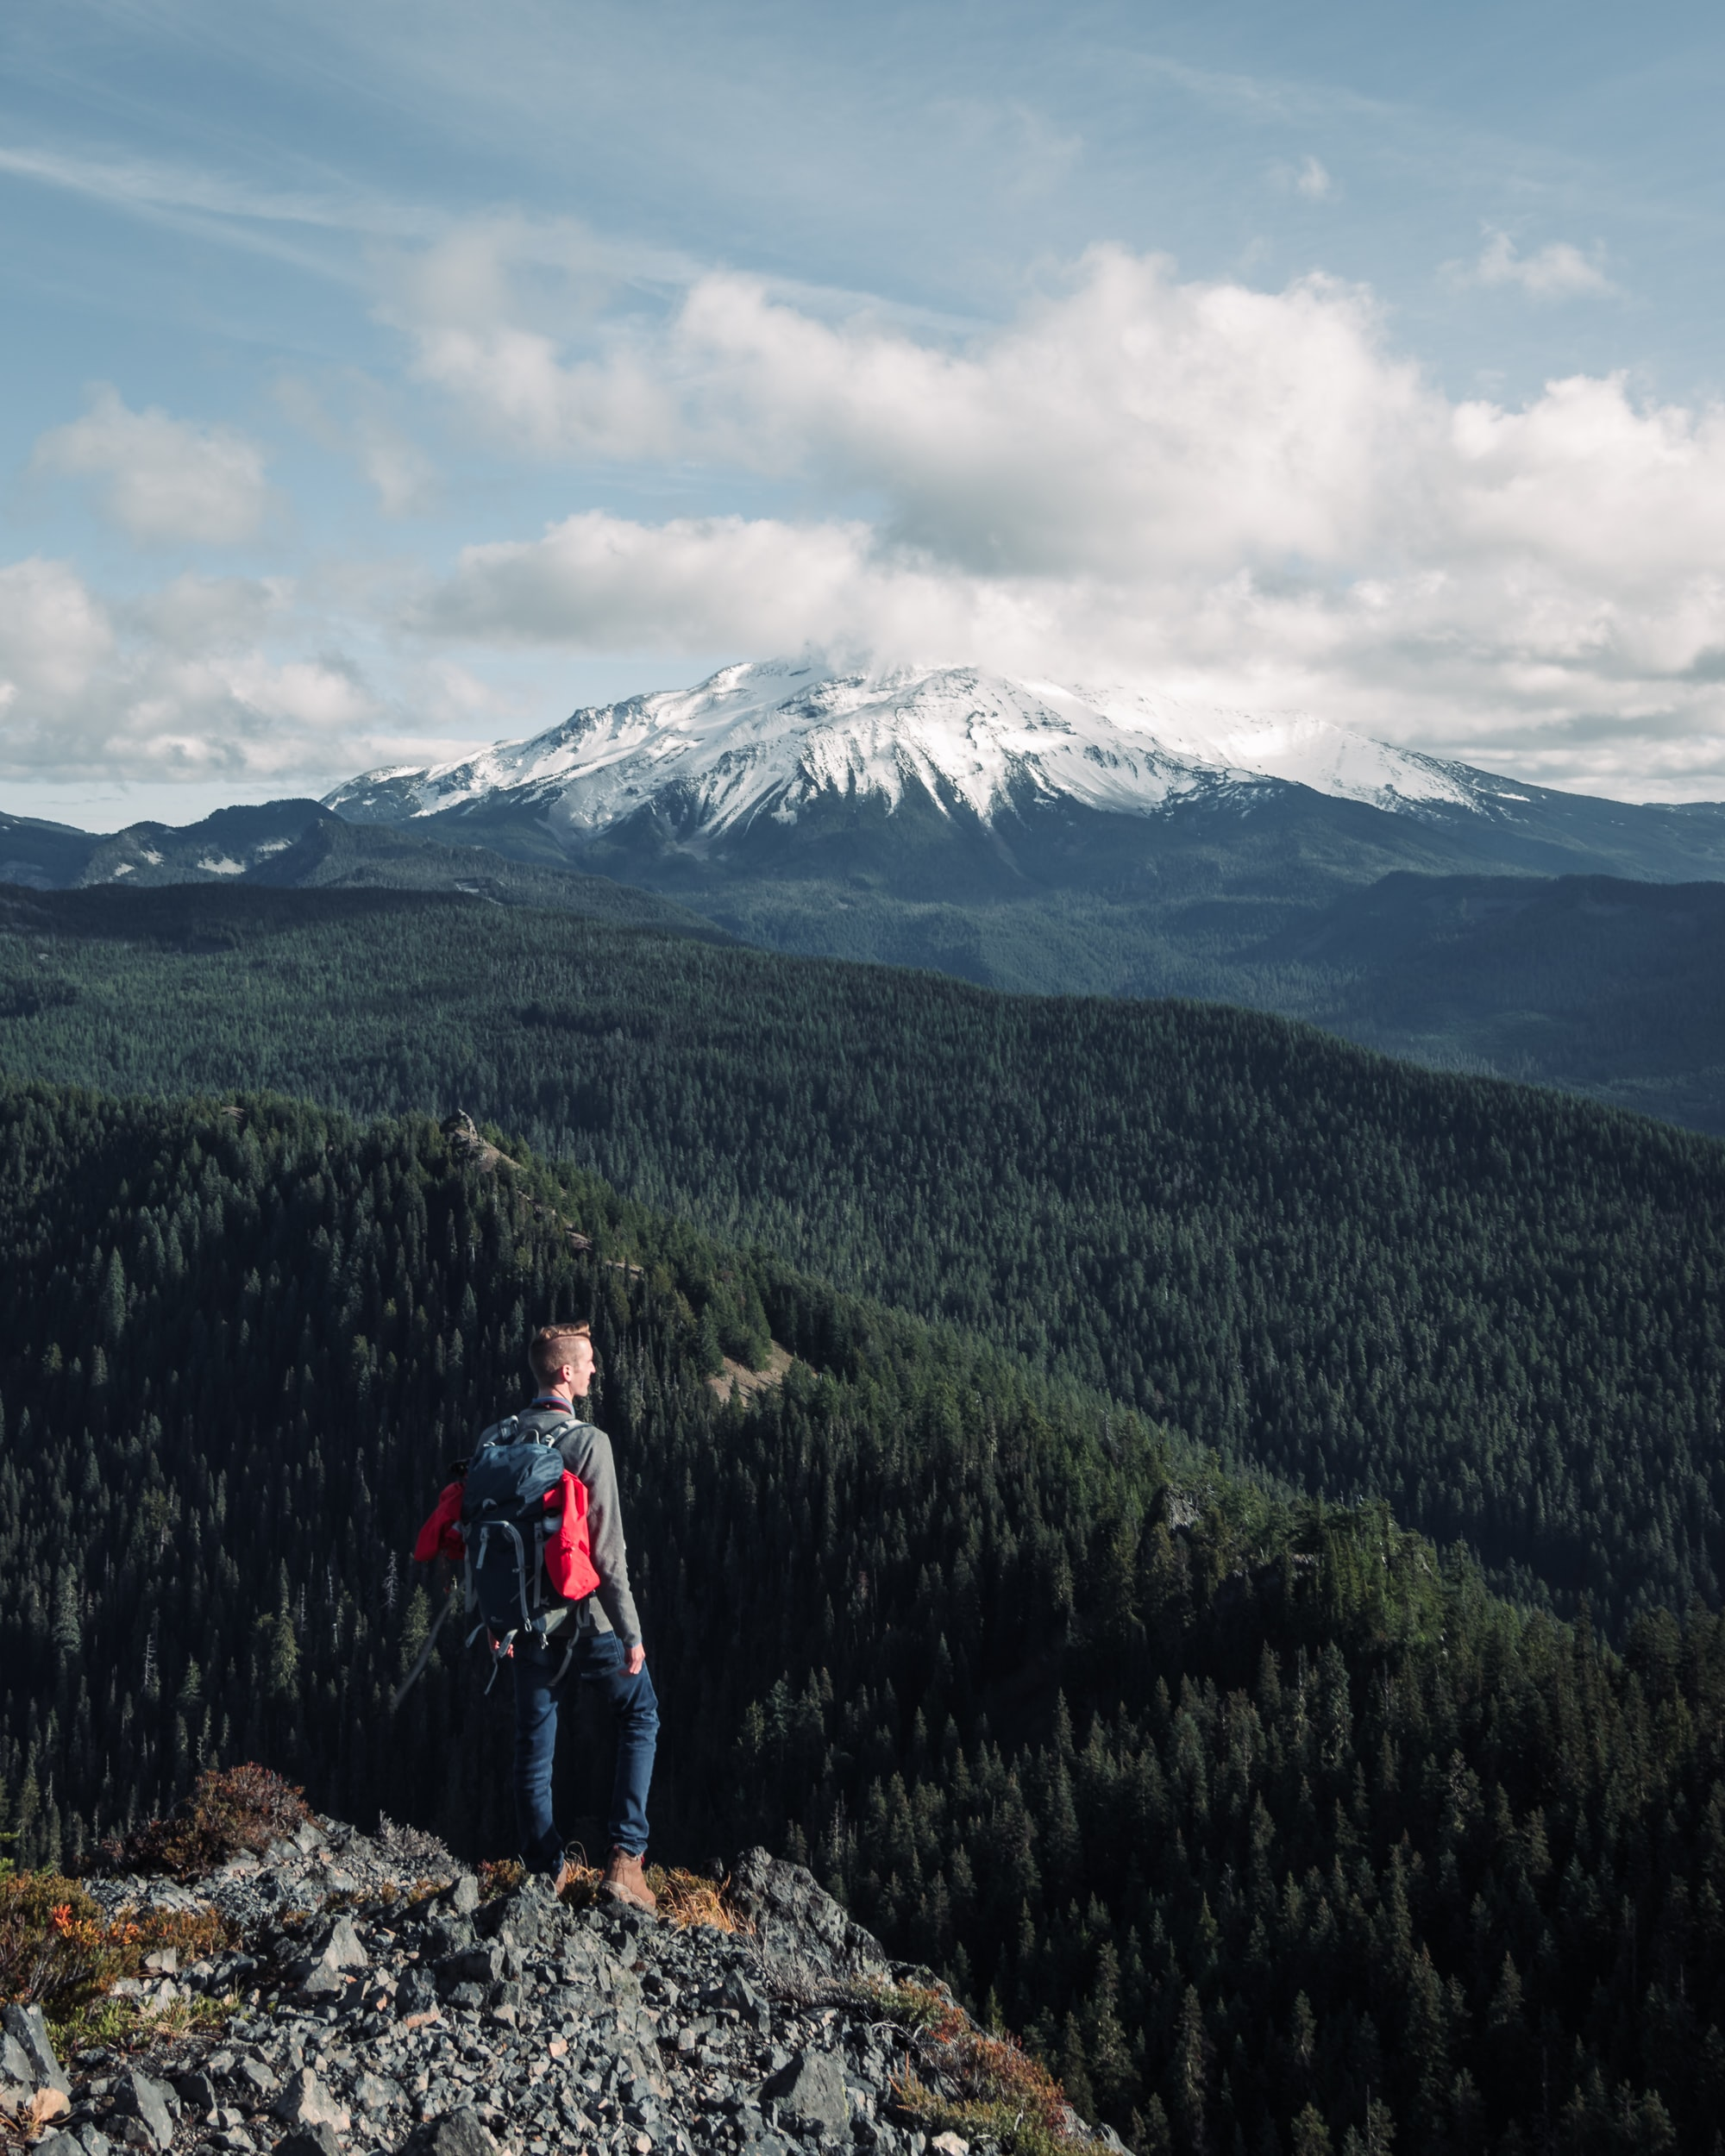 man standing on peak of mountain under cloudy sky